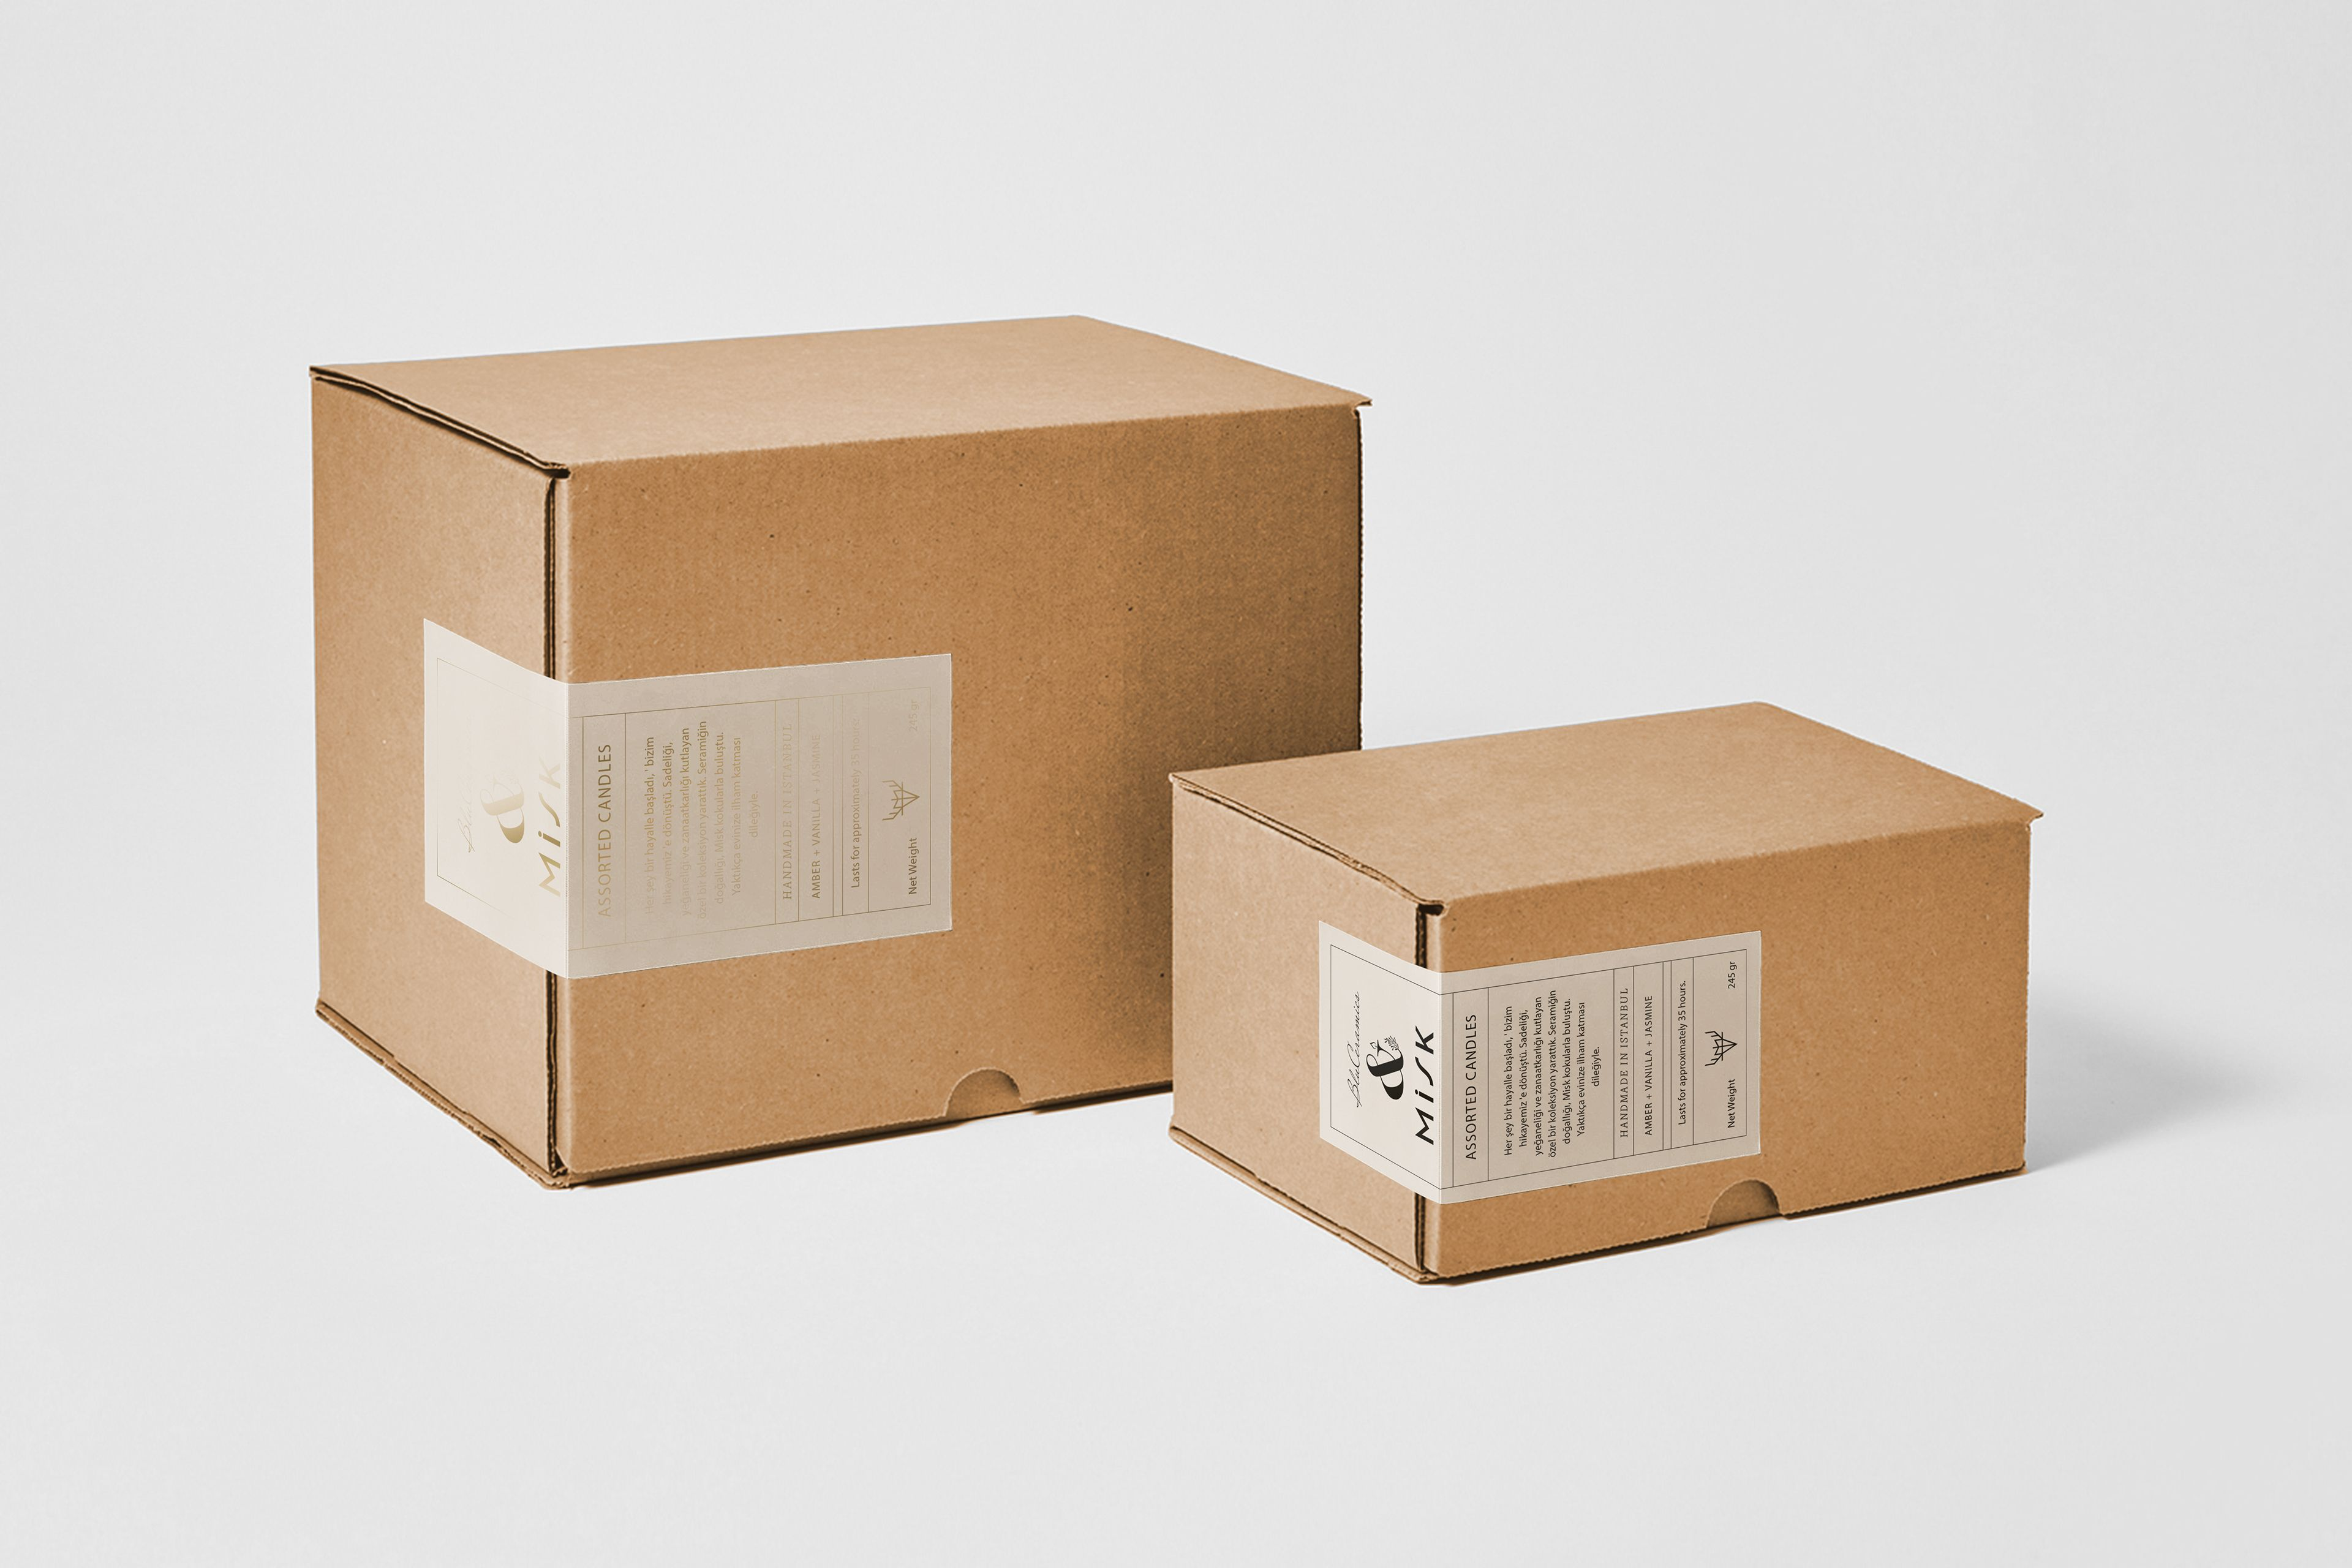 Candle Box Packaging By Cansu Merdamert Candle Packaging Candle Box Packaging Candle Box Design